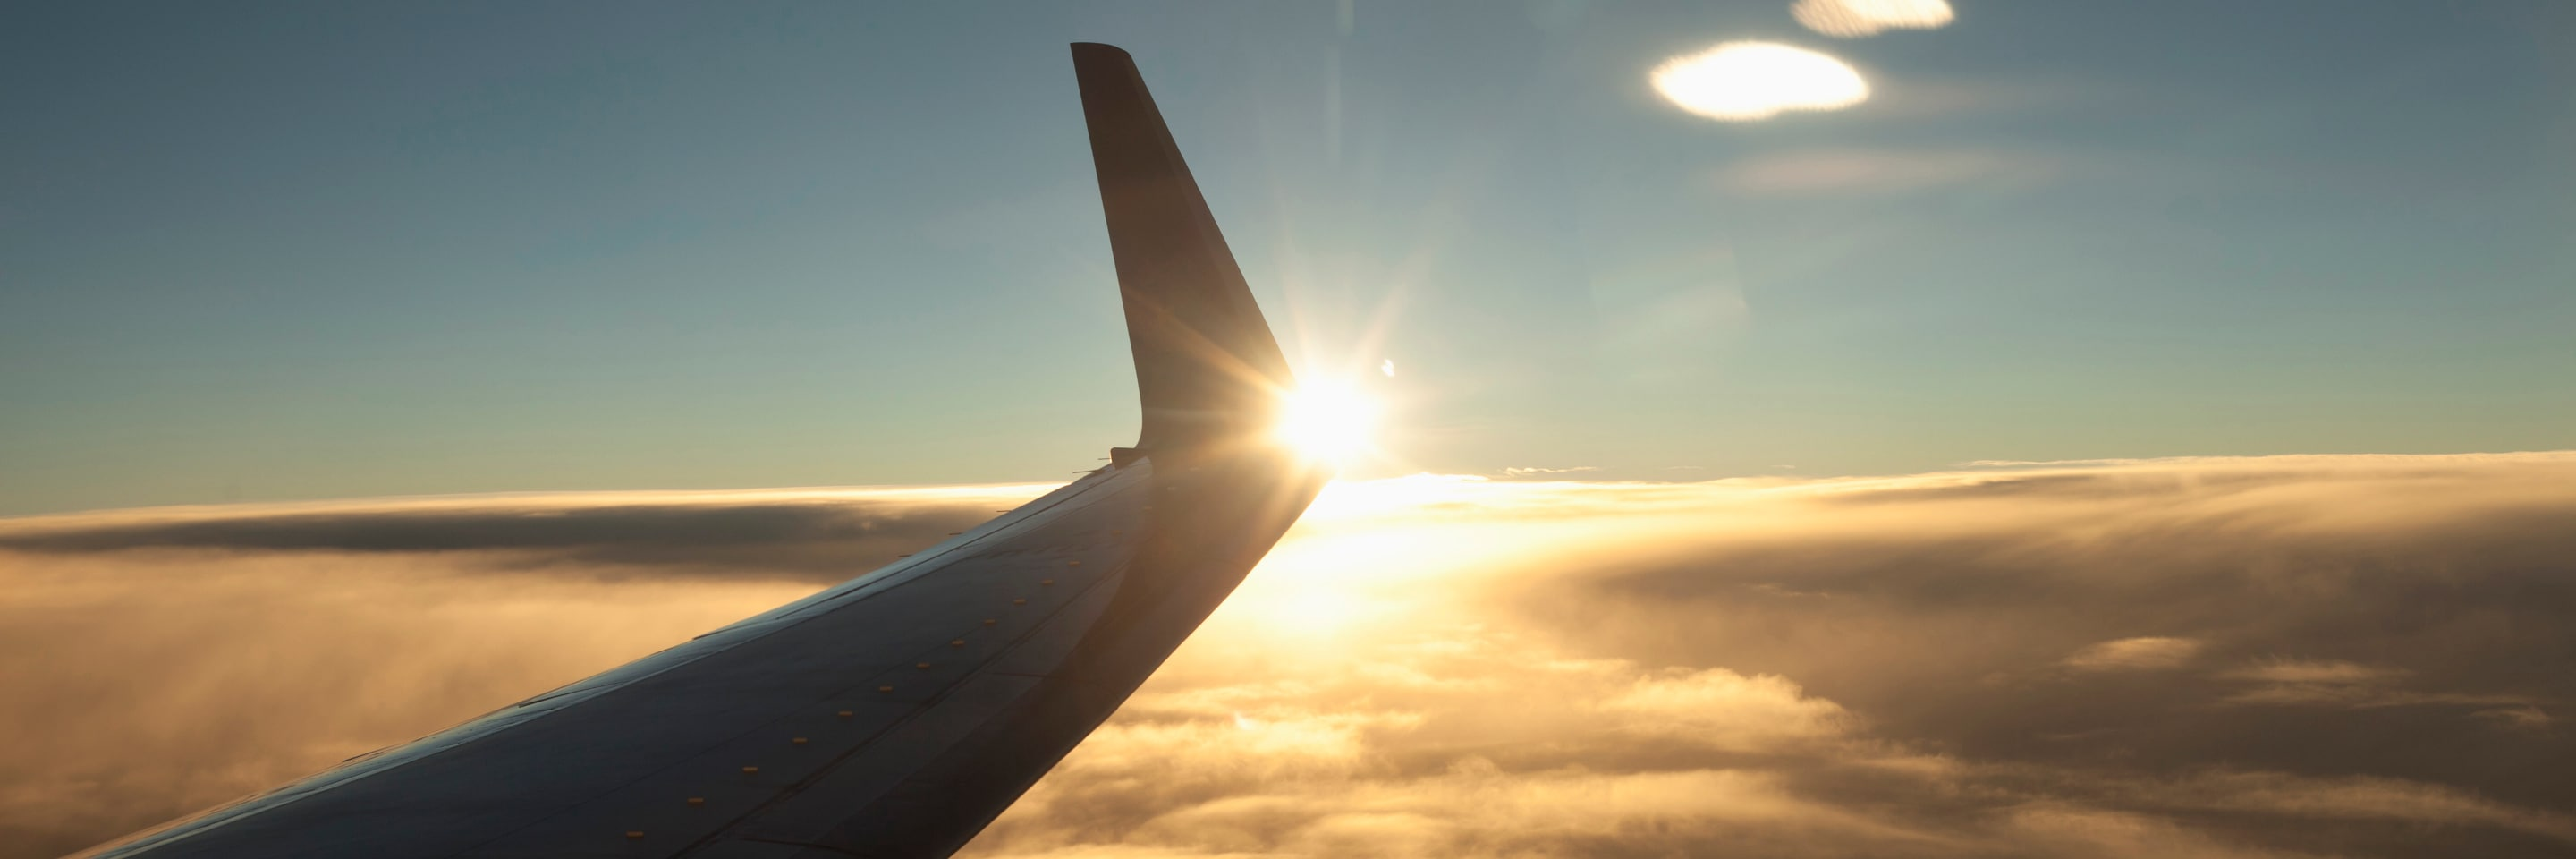 Airplane wing above clouds at sunset